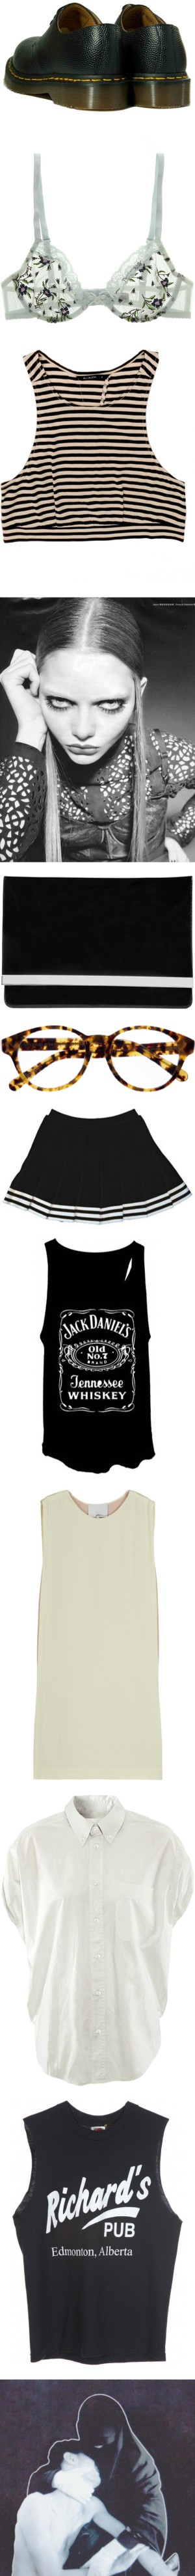 """""""PERFECTION?!?!?!?!?!"""" by headshapes ❤ liked on Polyvore"""